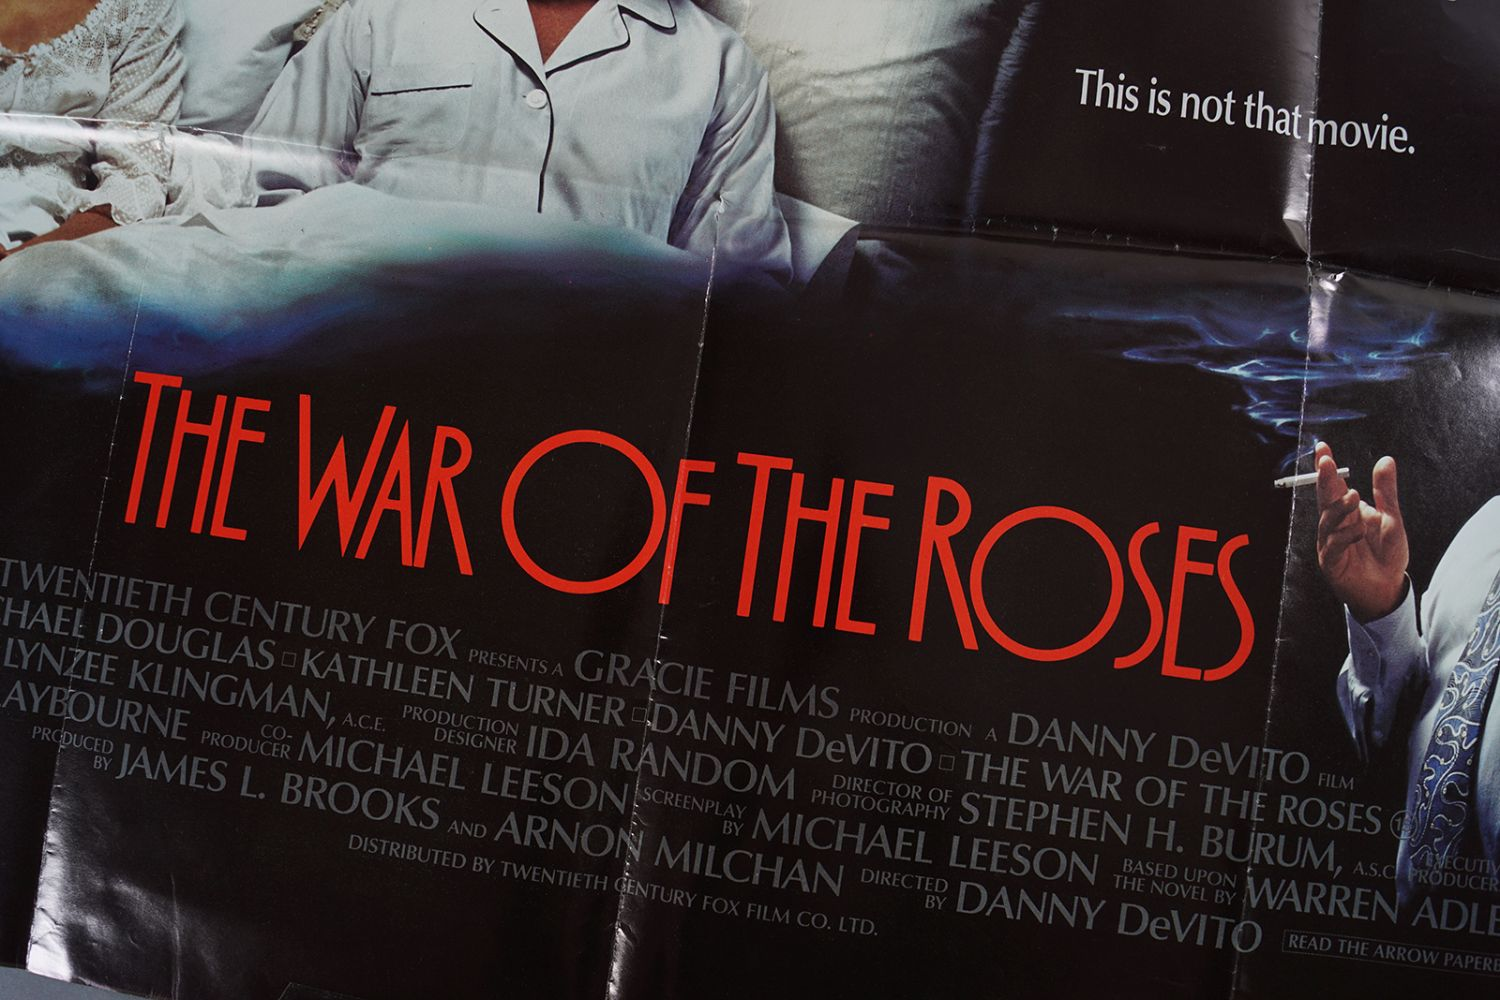 THE WAR OF THE ROSES - Image 2 of 3